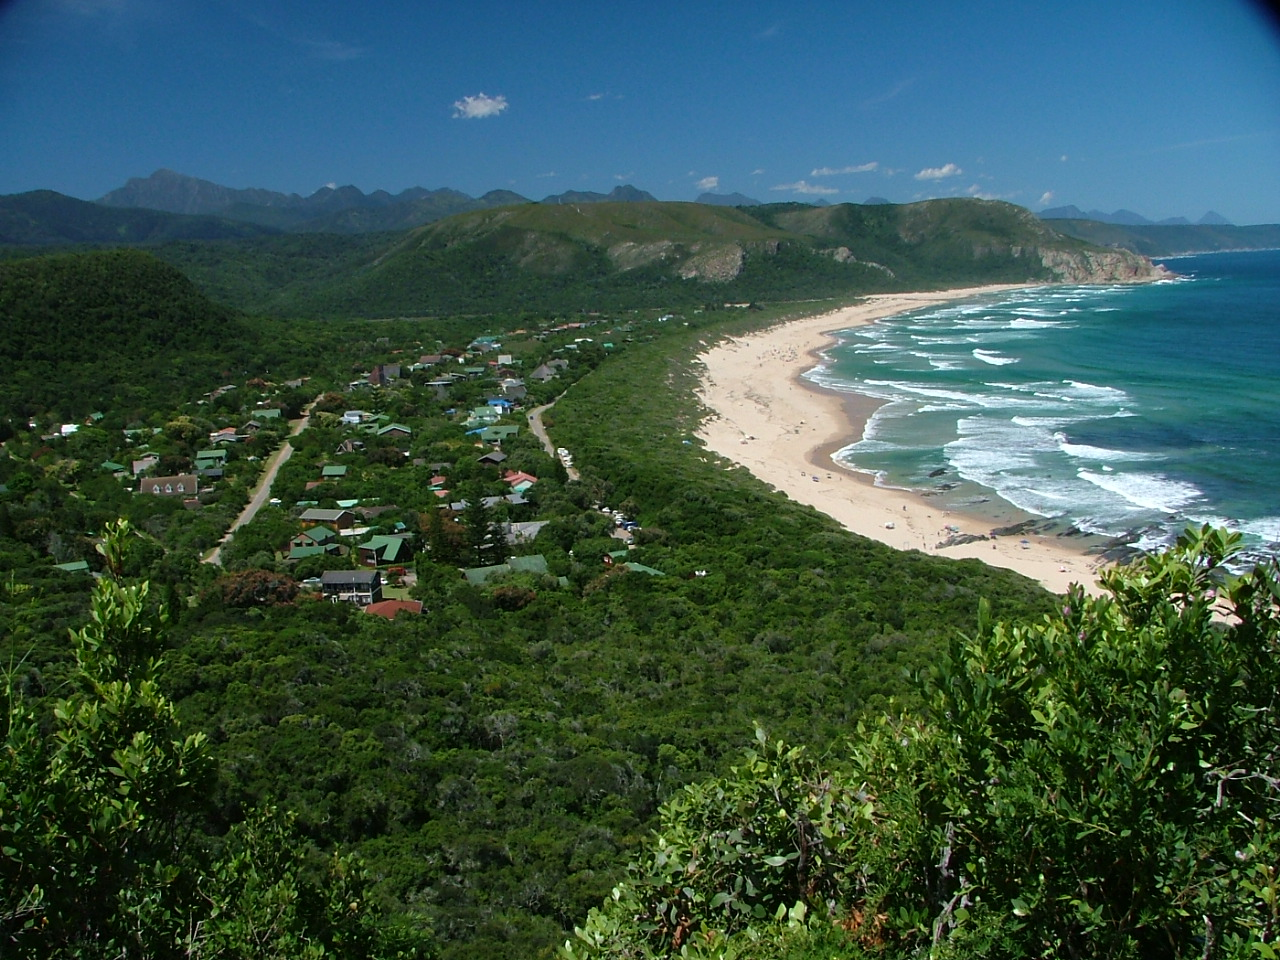 File:Nature's Valley (S. Africa).jpg - Wikipedia, the free ...